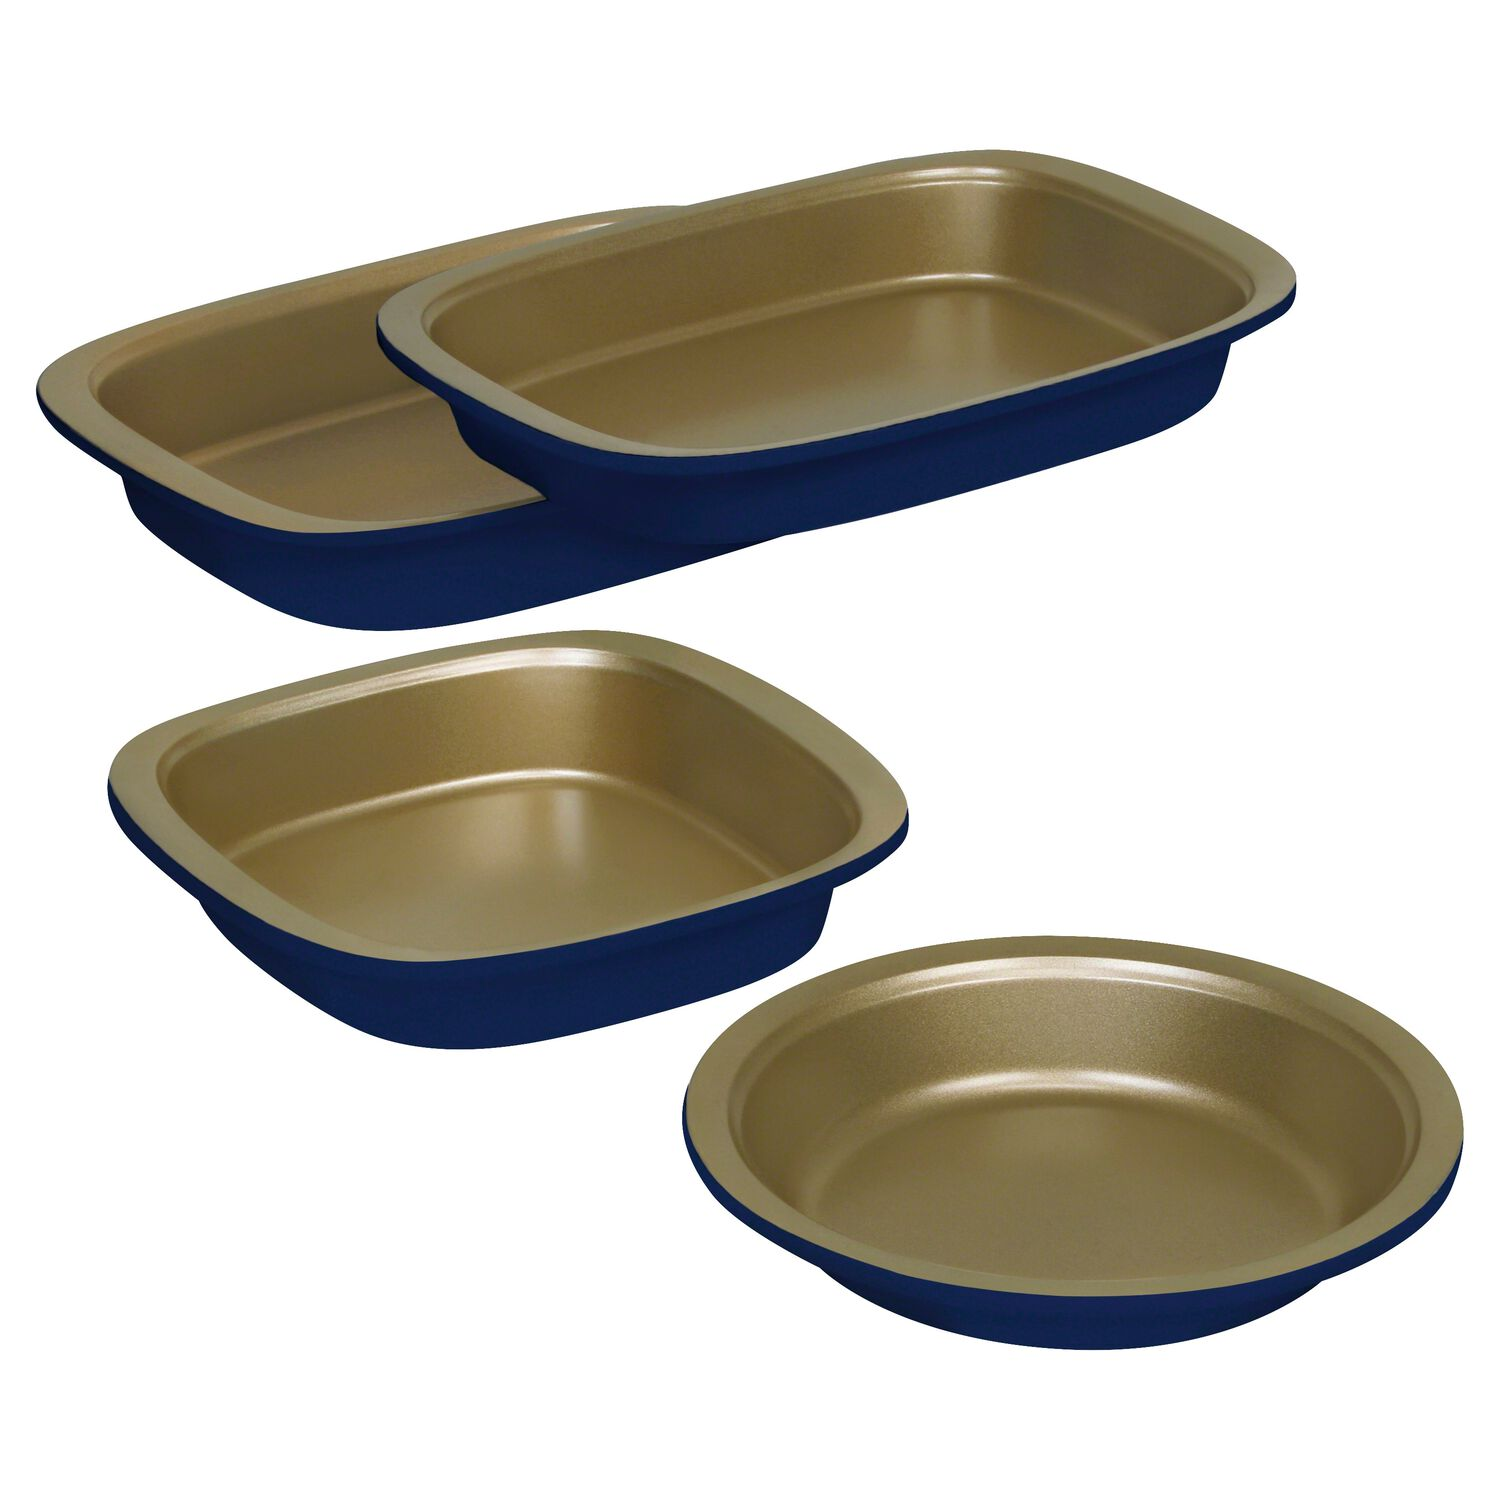 Baker's Secret 3-Pc Bake & Serve Blue And Gold 4-Pc Set